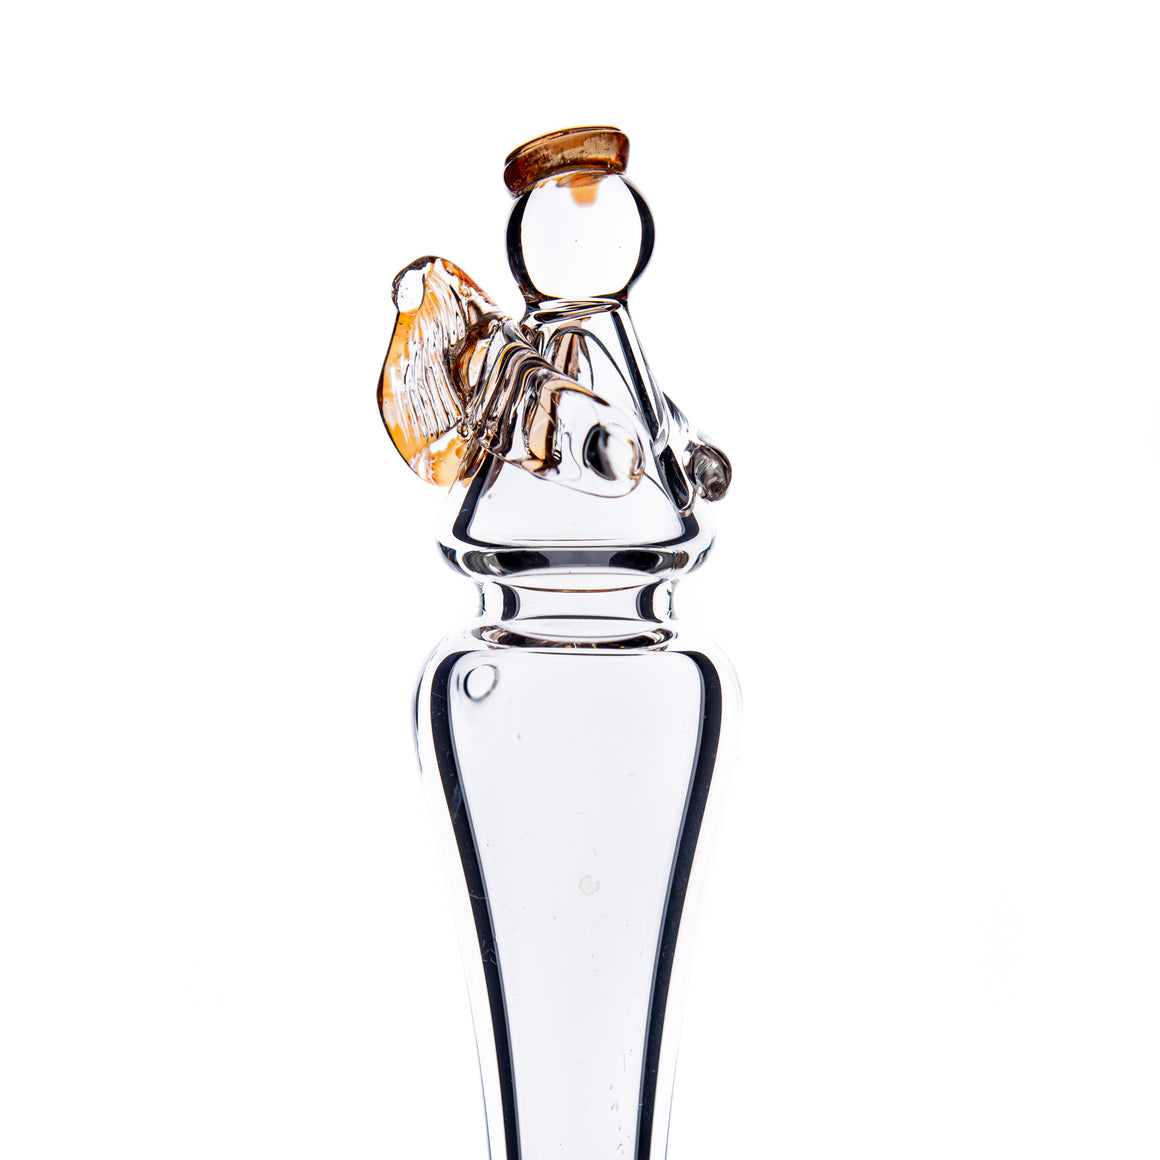 Whisky Water Dropper - Pot Still, Angel or Thistle